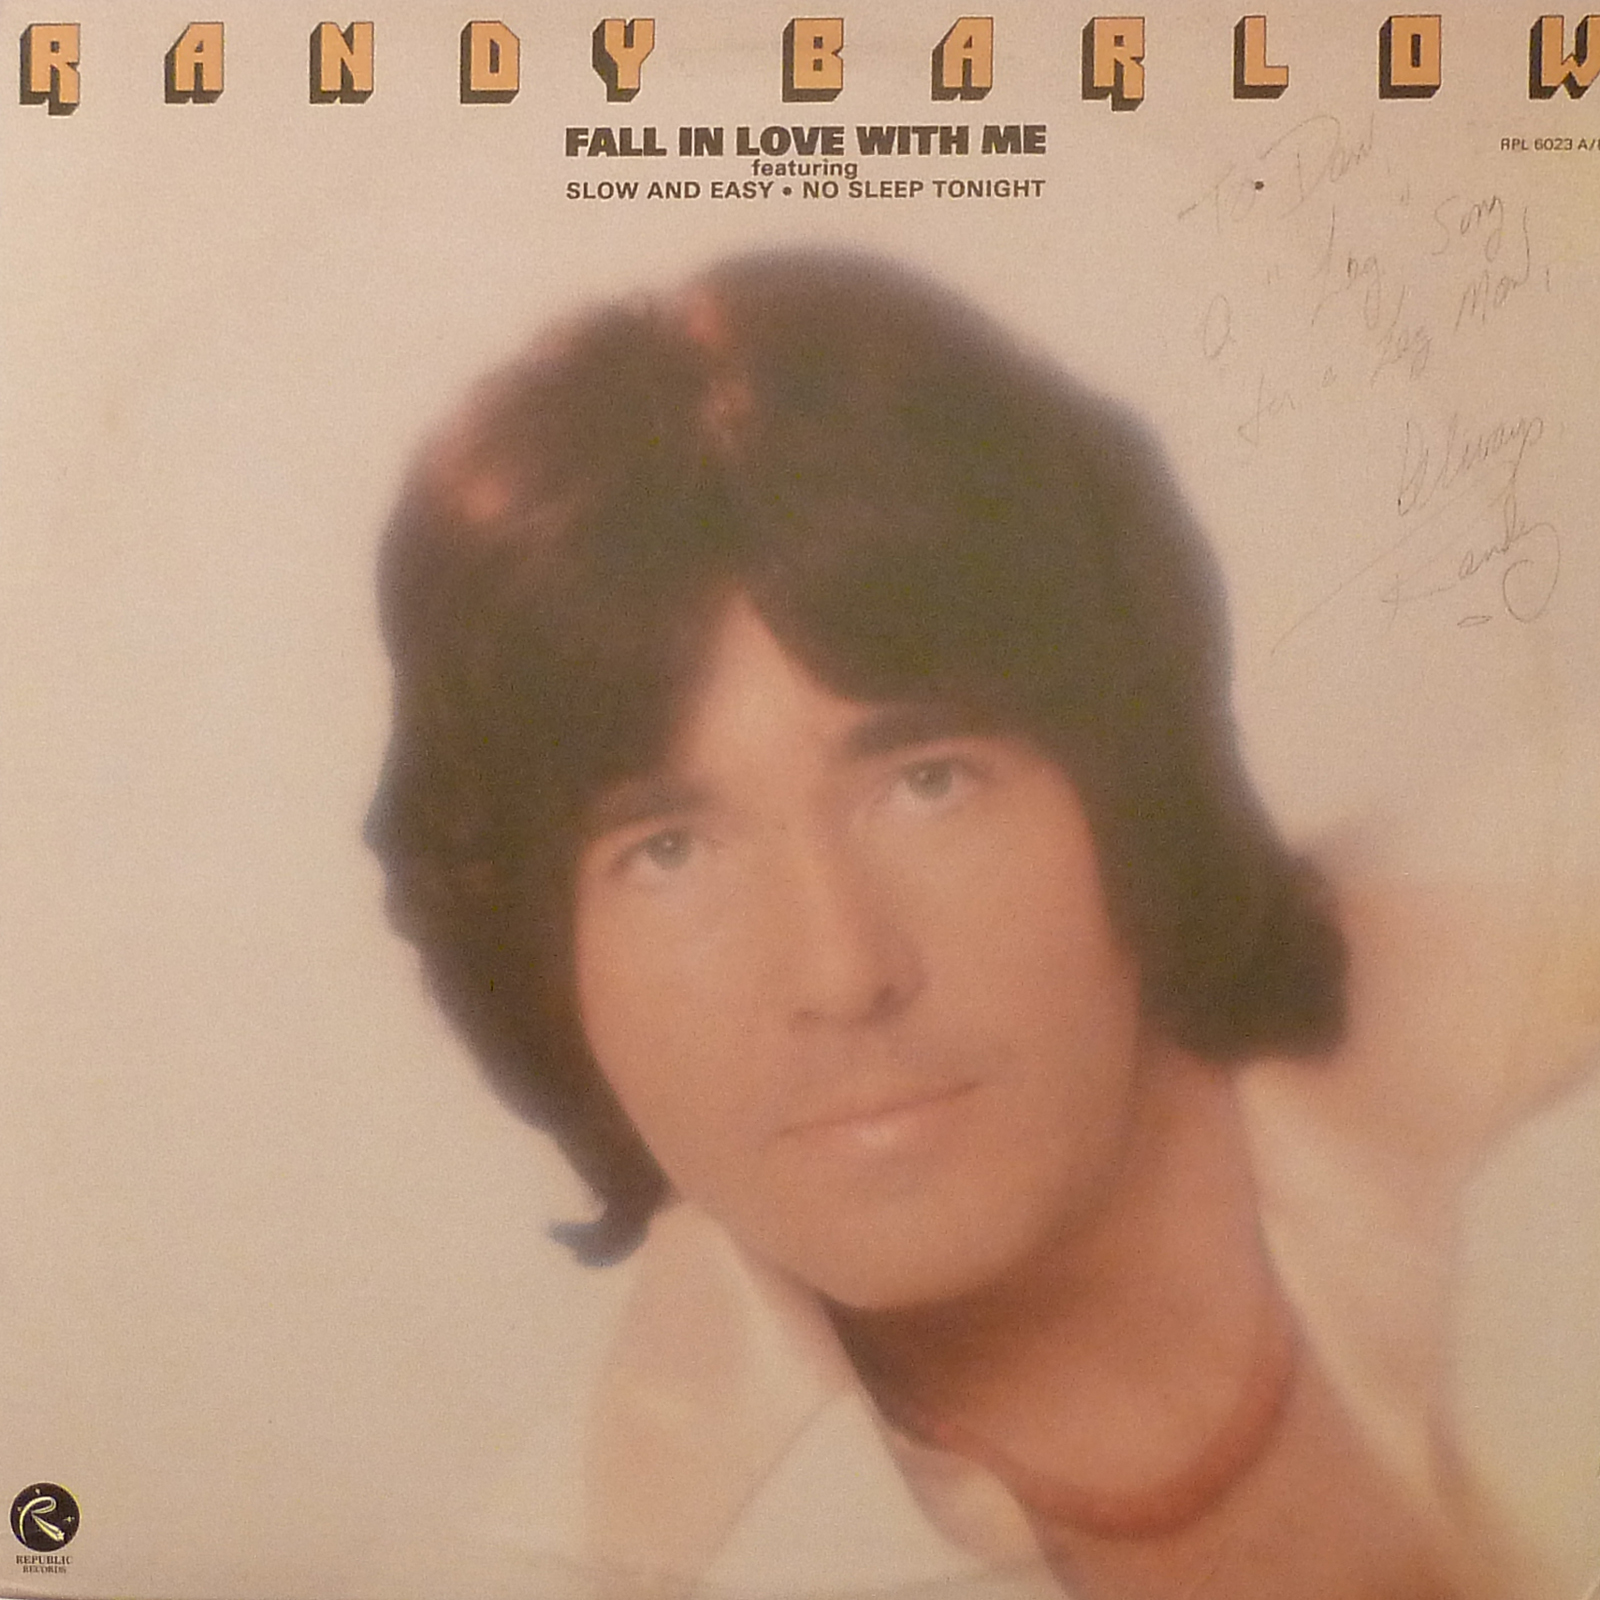 Randy Barlow Fall In Love With Me LP Autographed Signed